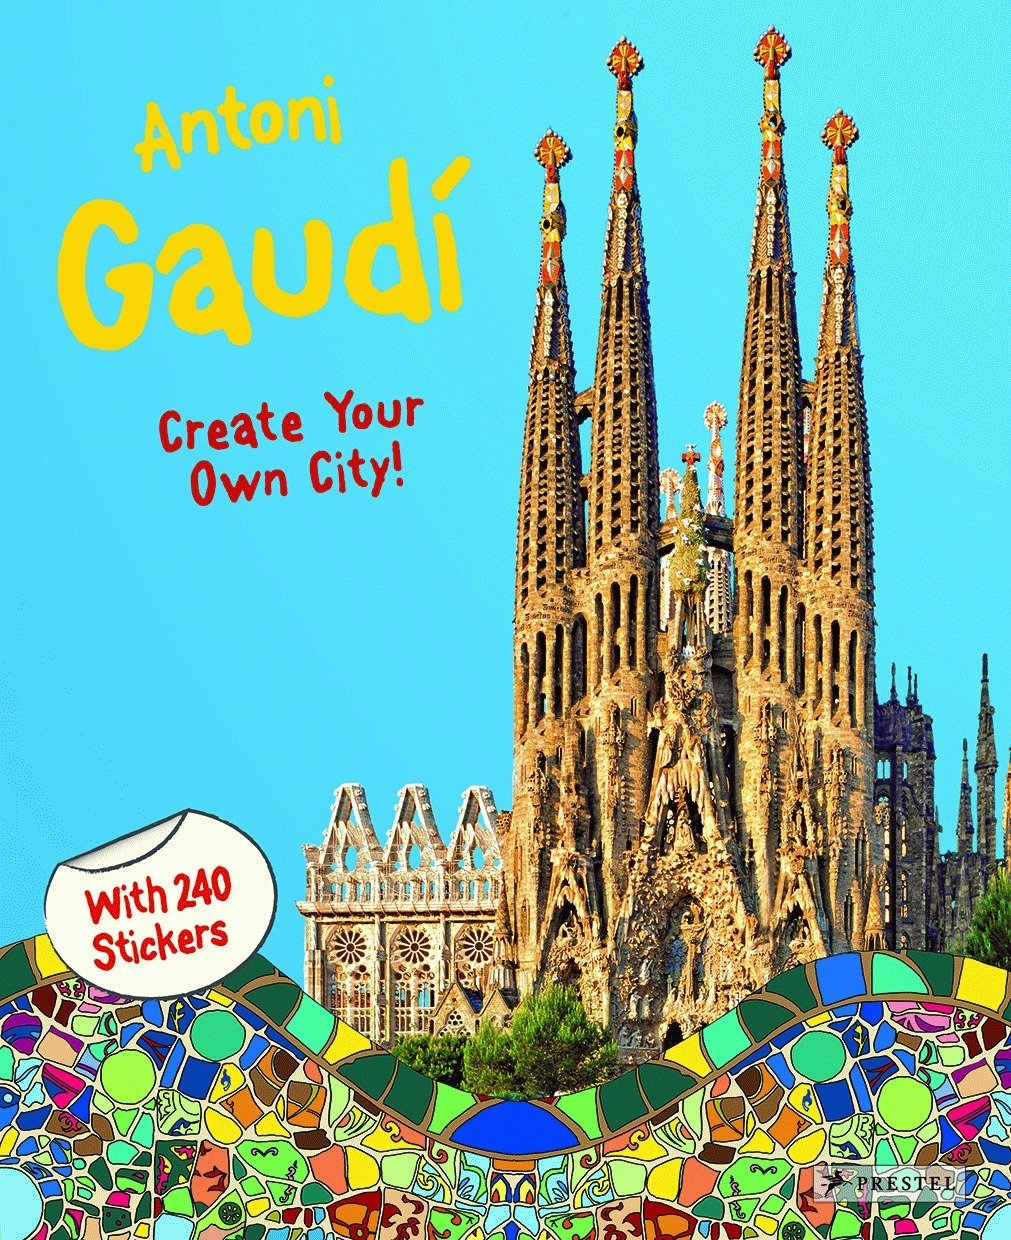 Download Antoni Gaudí: Create Your Own City Sticker Book pdf